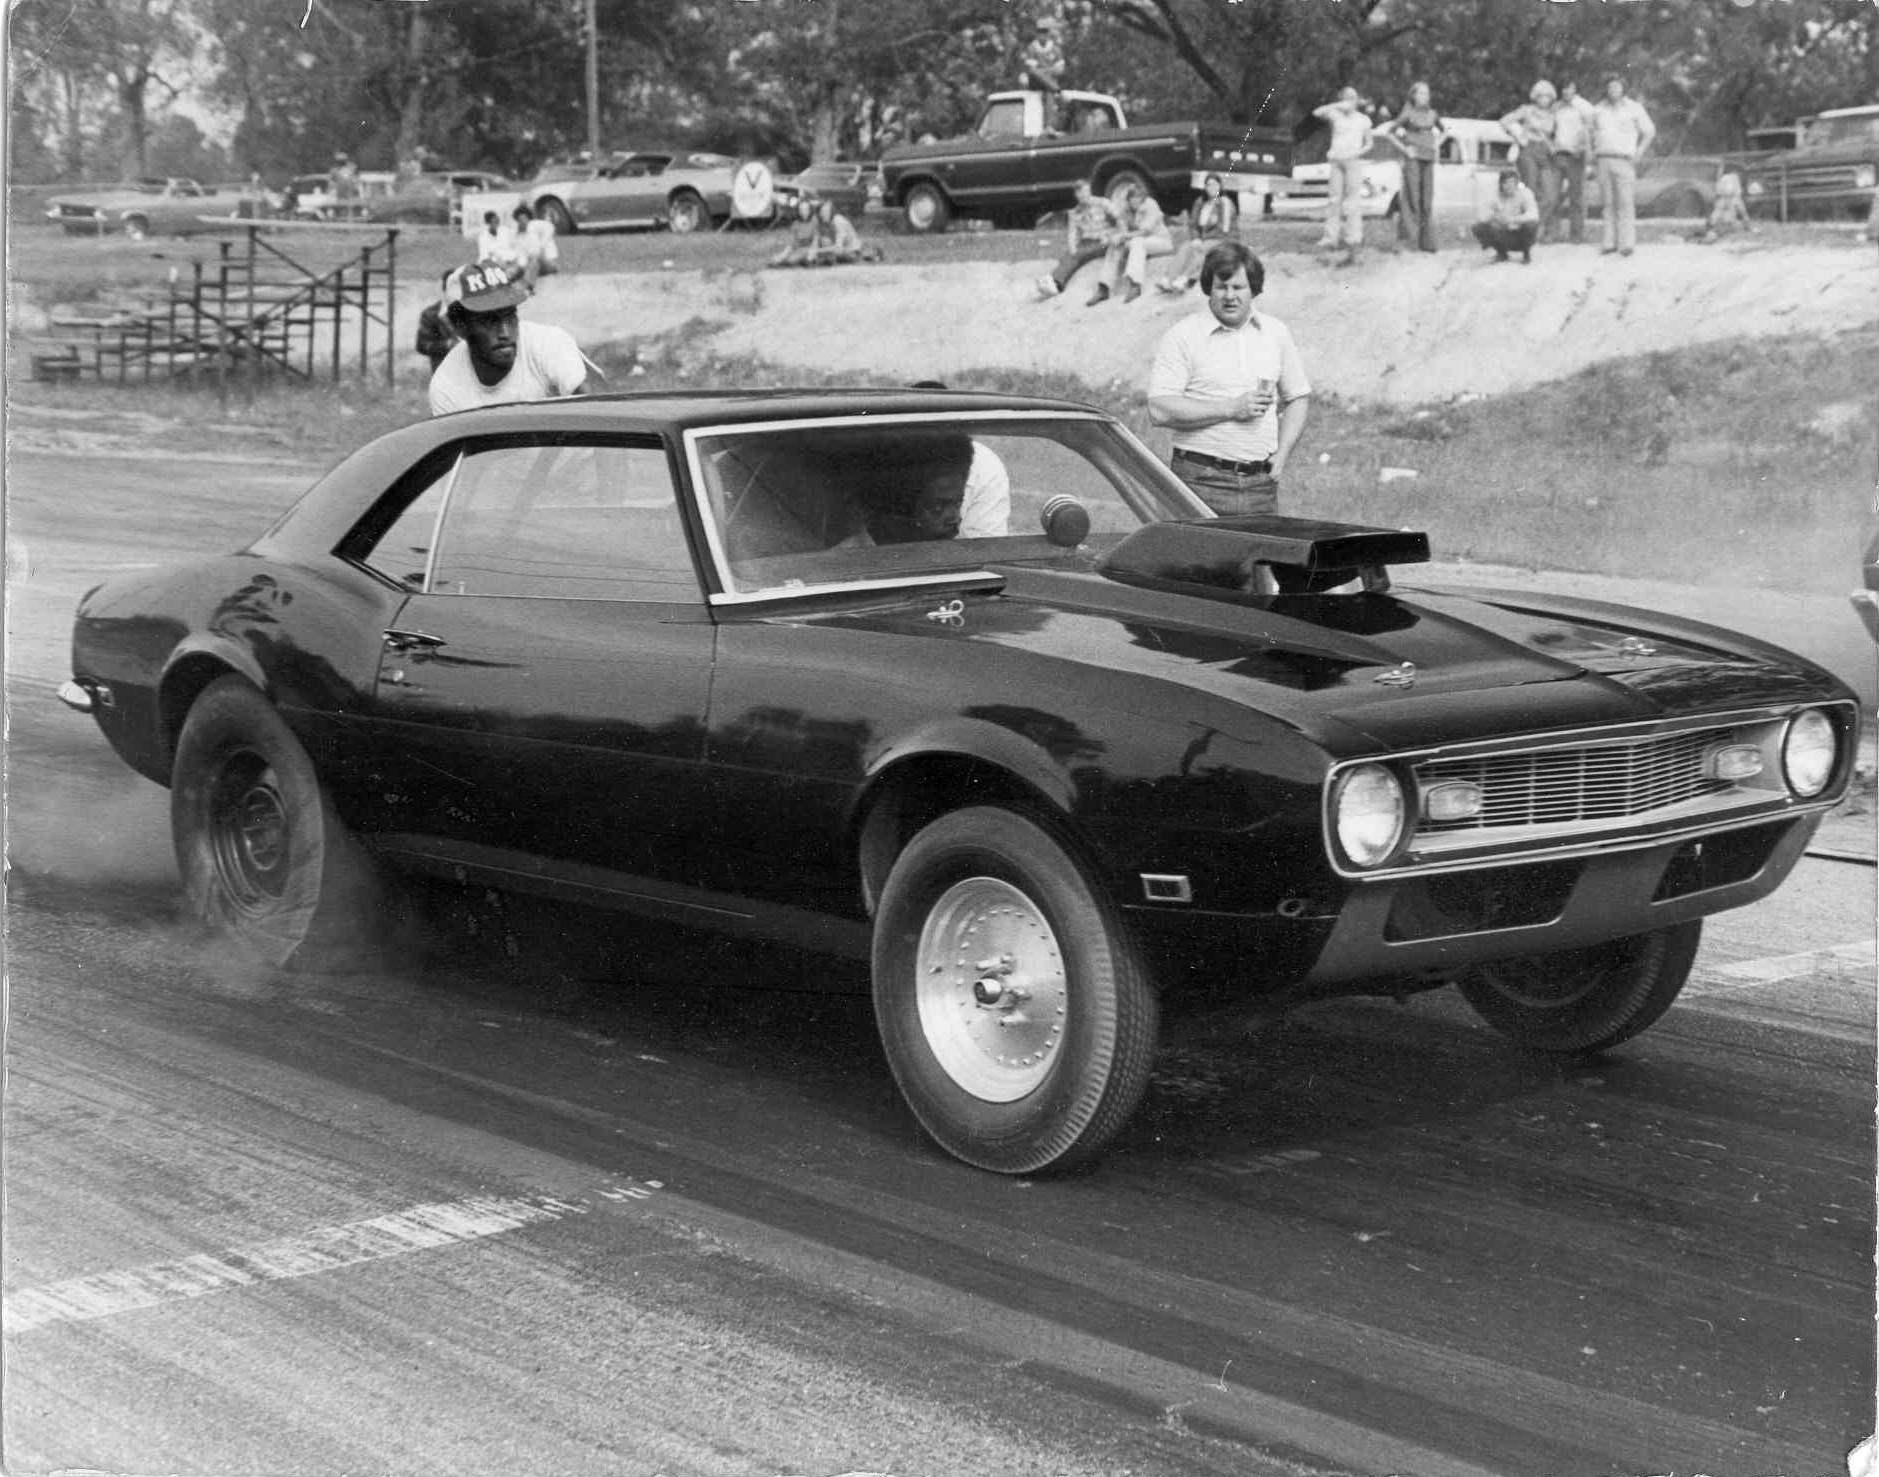 Vintage | AmcarGuide.com - American muscle car guide